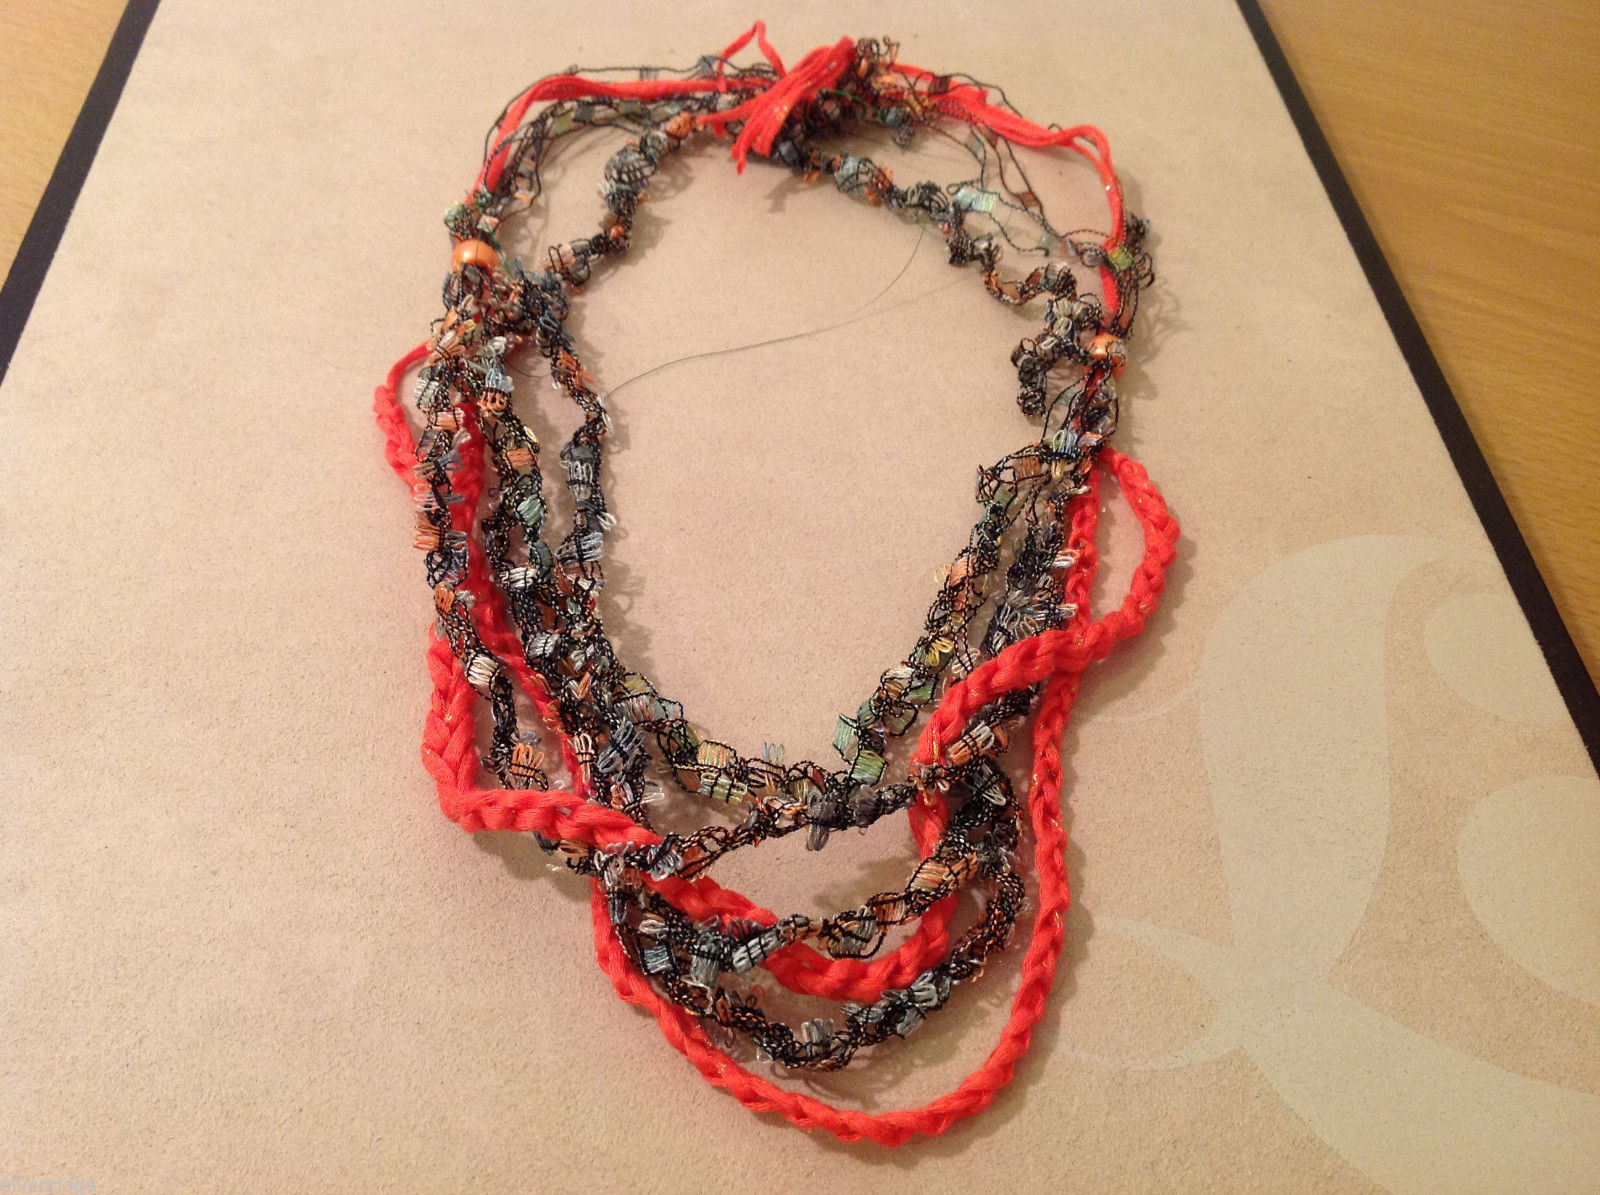 Orange Multicolored Knit Fabric Head Band or Necklace with orange beads